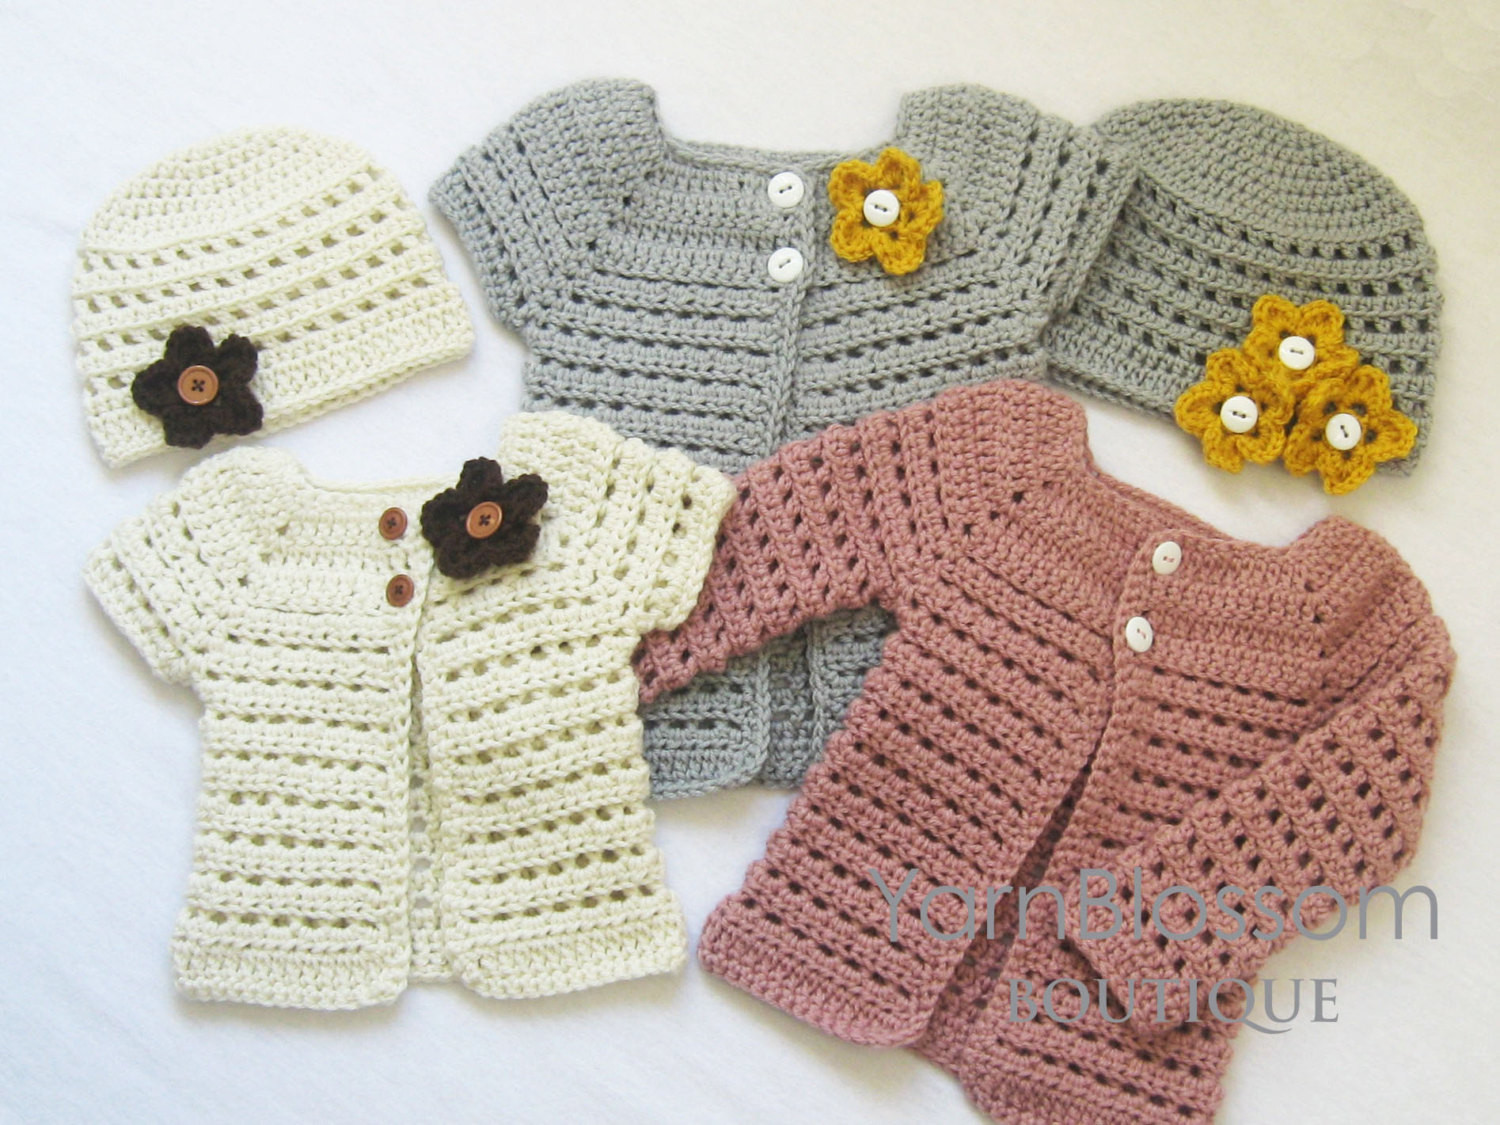 Elegant toddler Crochet Sweater Pattern Free Crochet Patterns for toddlers Of Brilliant 47 Photos Free Crochet Patterns for toddlers